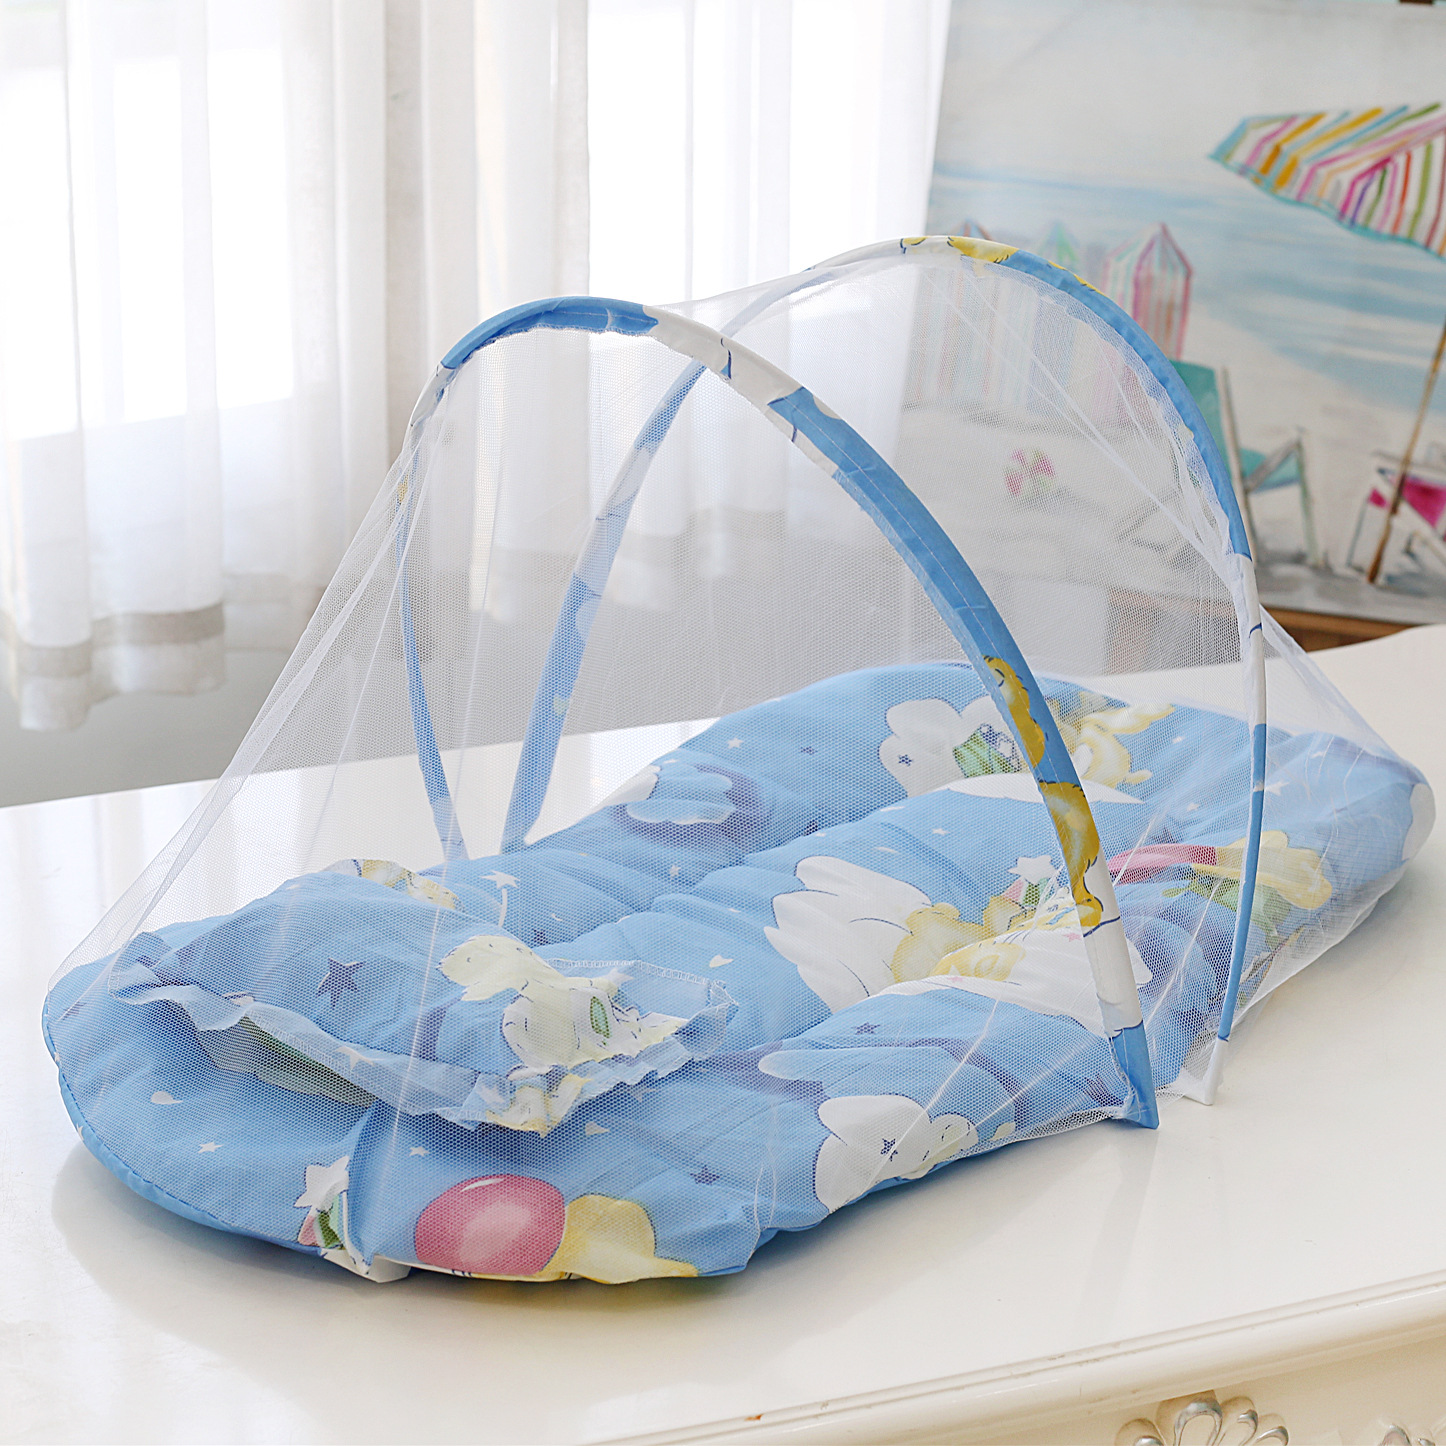 2020Summer Breathable Baby Bed Netting Foldable Portable Lace Cotton Material Net Yarn Newborn Moving Bed Super Lightweight Crib